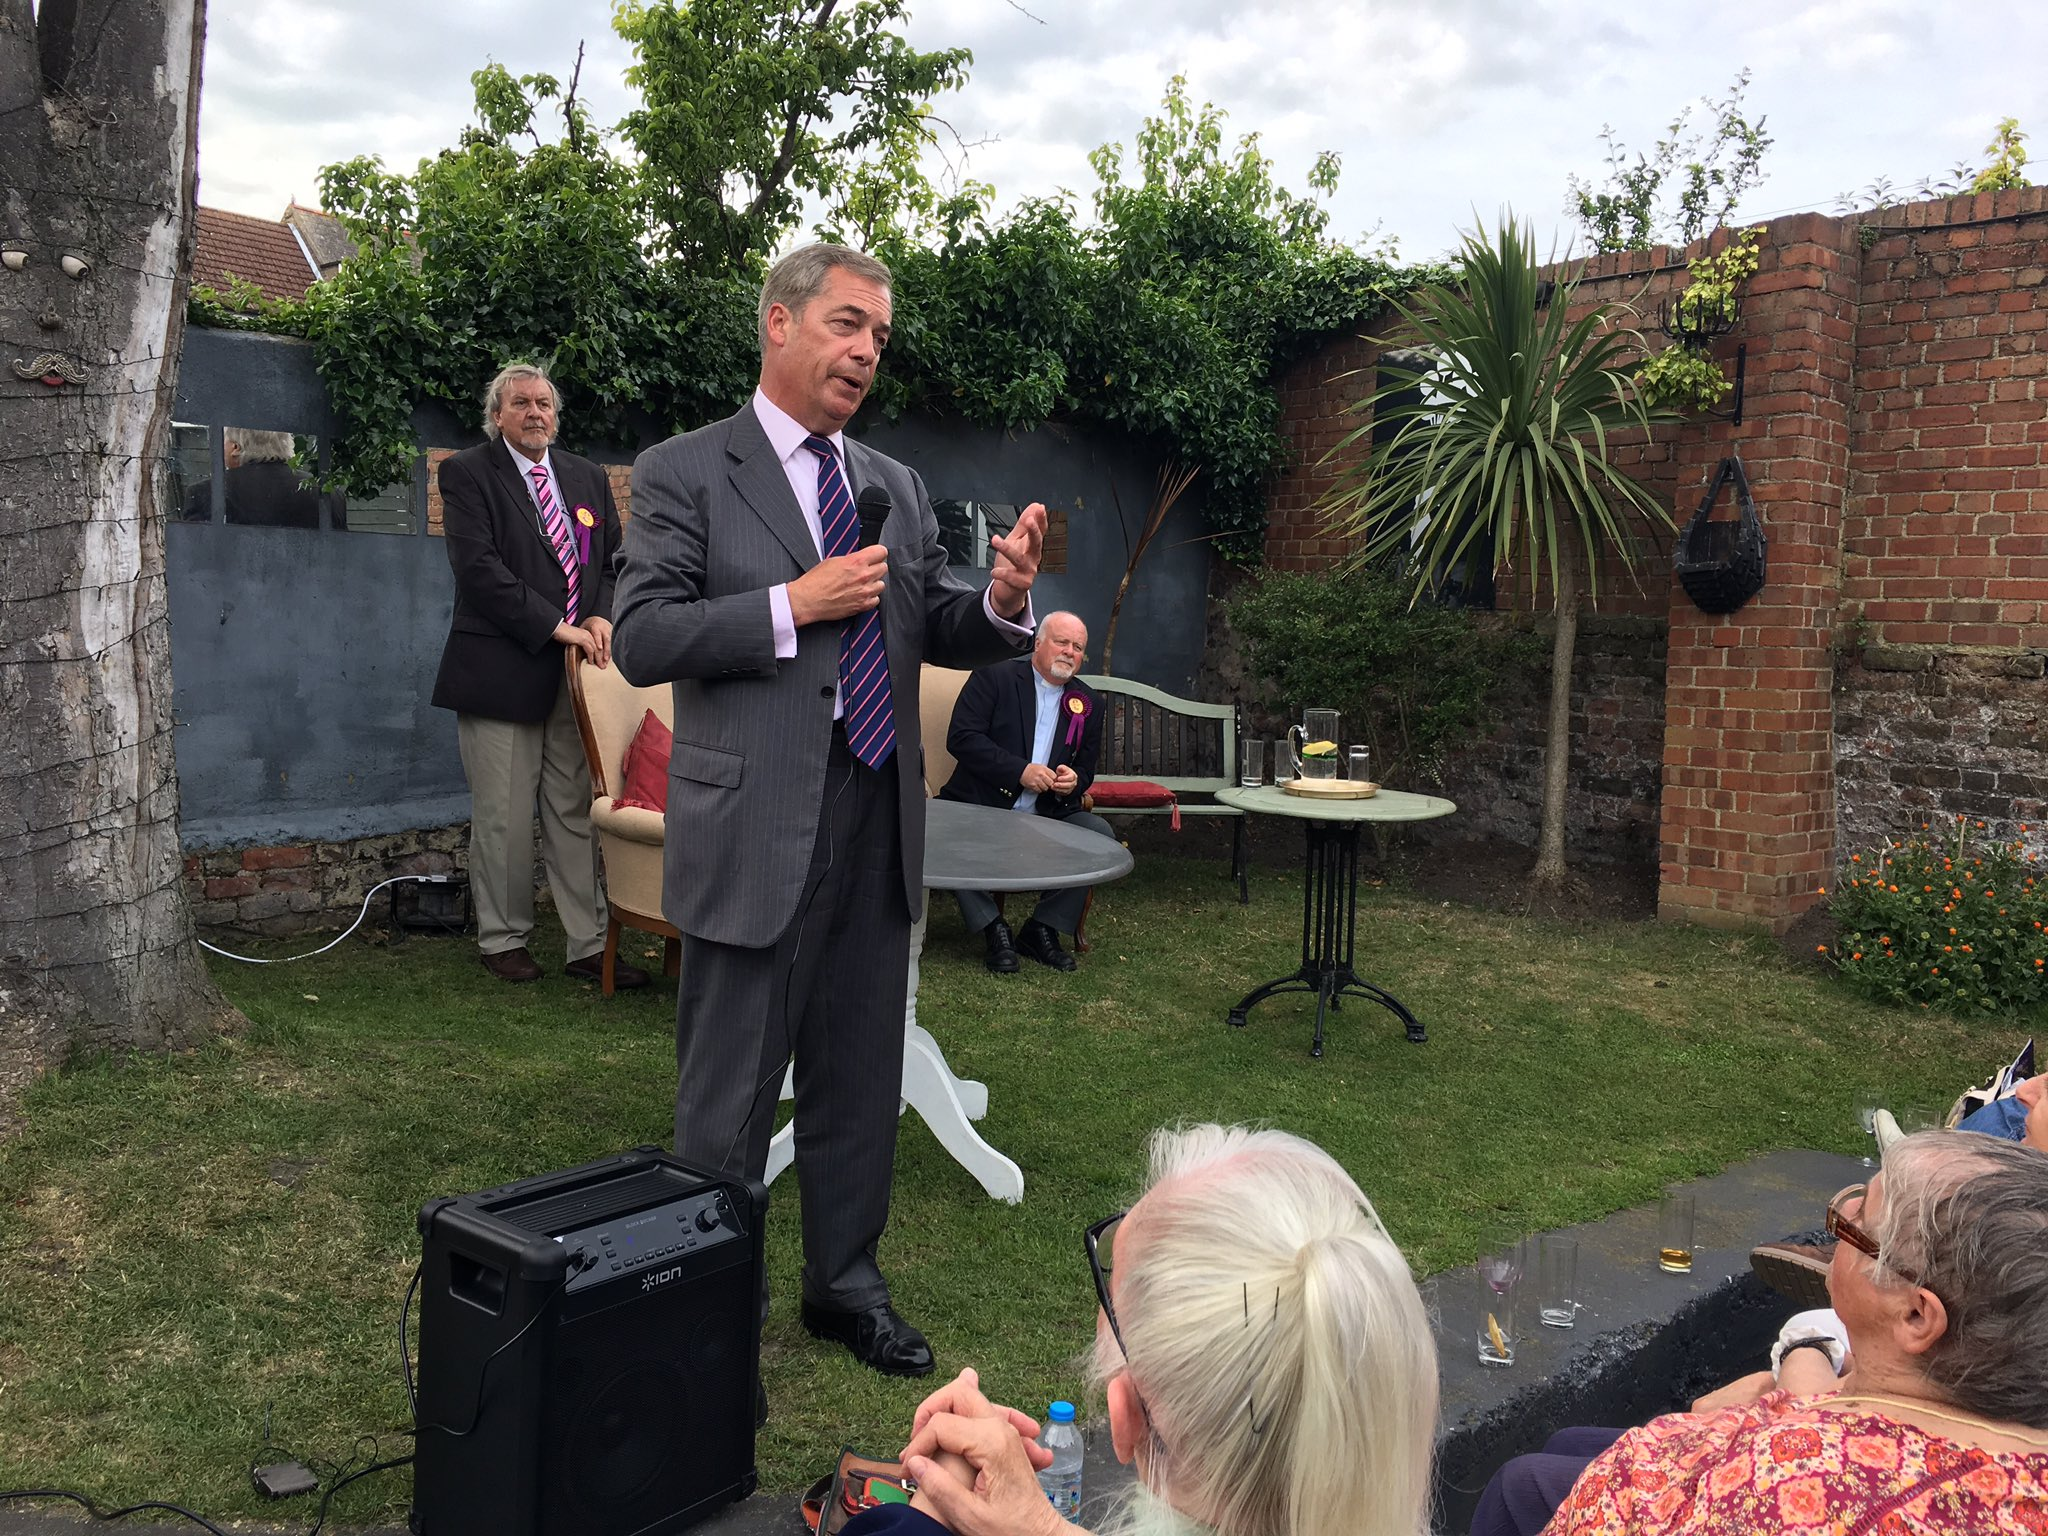 Proud to support the Reverend Stuart Piper, UKIP's candidate in South Thanet. Onwards to victory! https://t.co/CmJWDguYVO